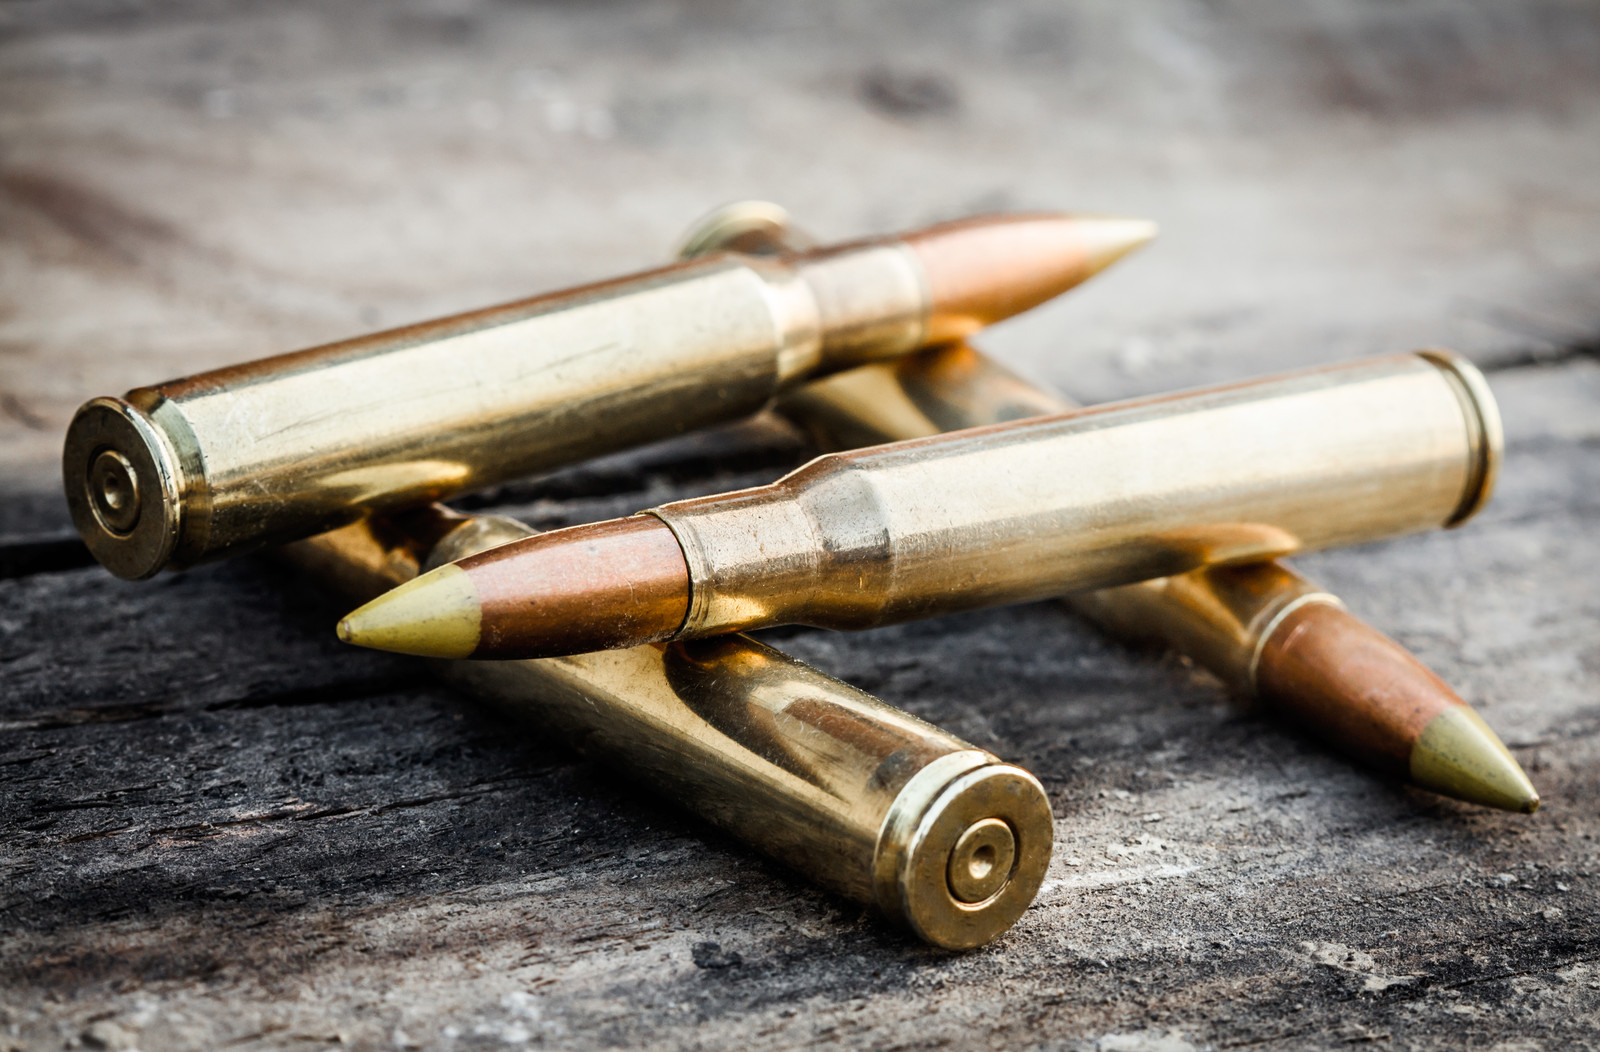 Bullets at shooting range © Toxno